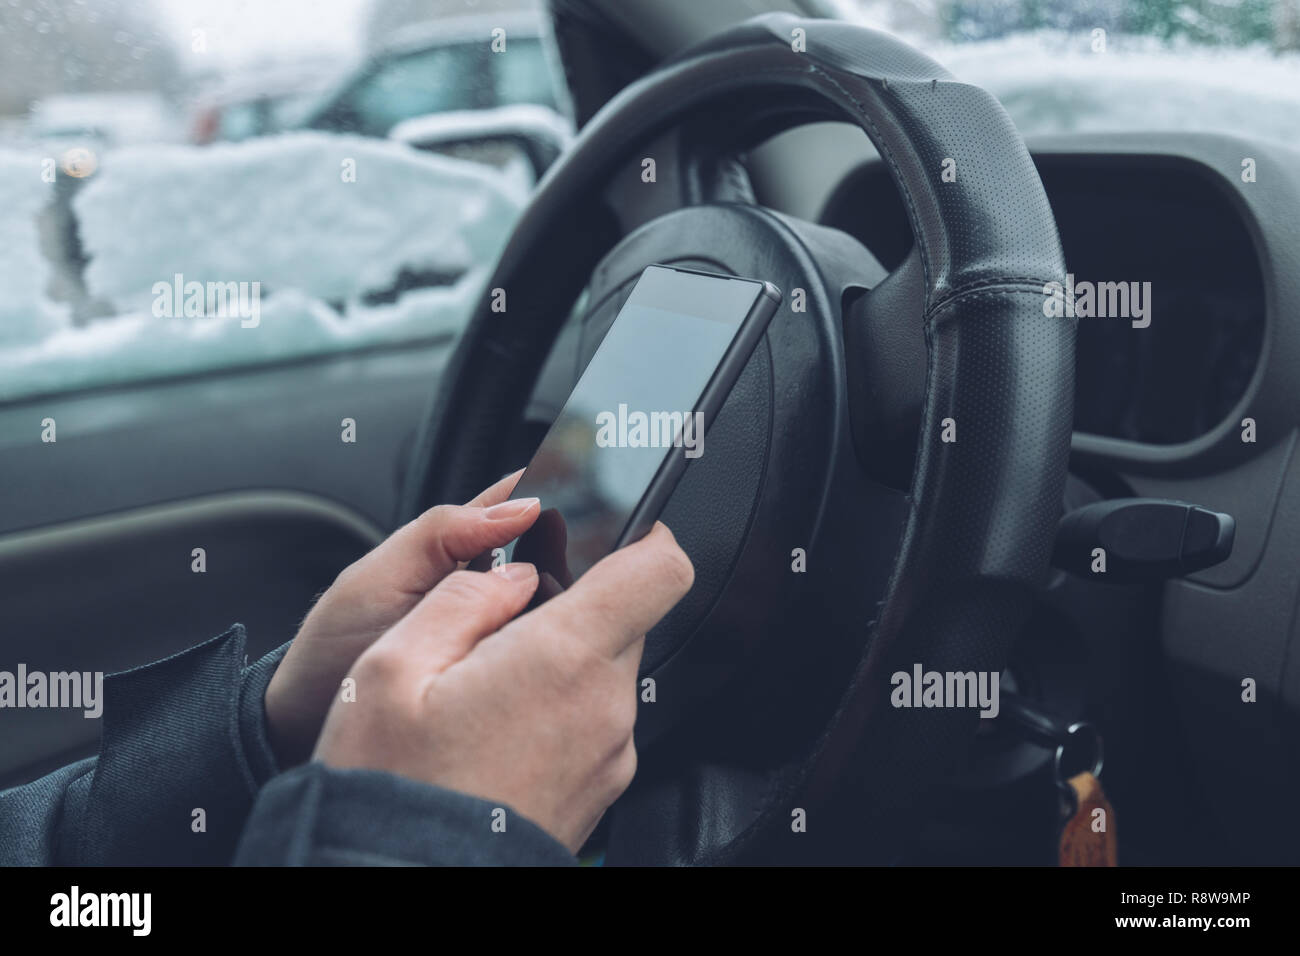 Texting in parked car while the snow is falling outside, close up of hands typing message on mobile phone, selective focus - Stock Image